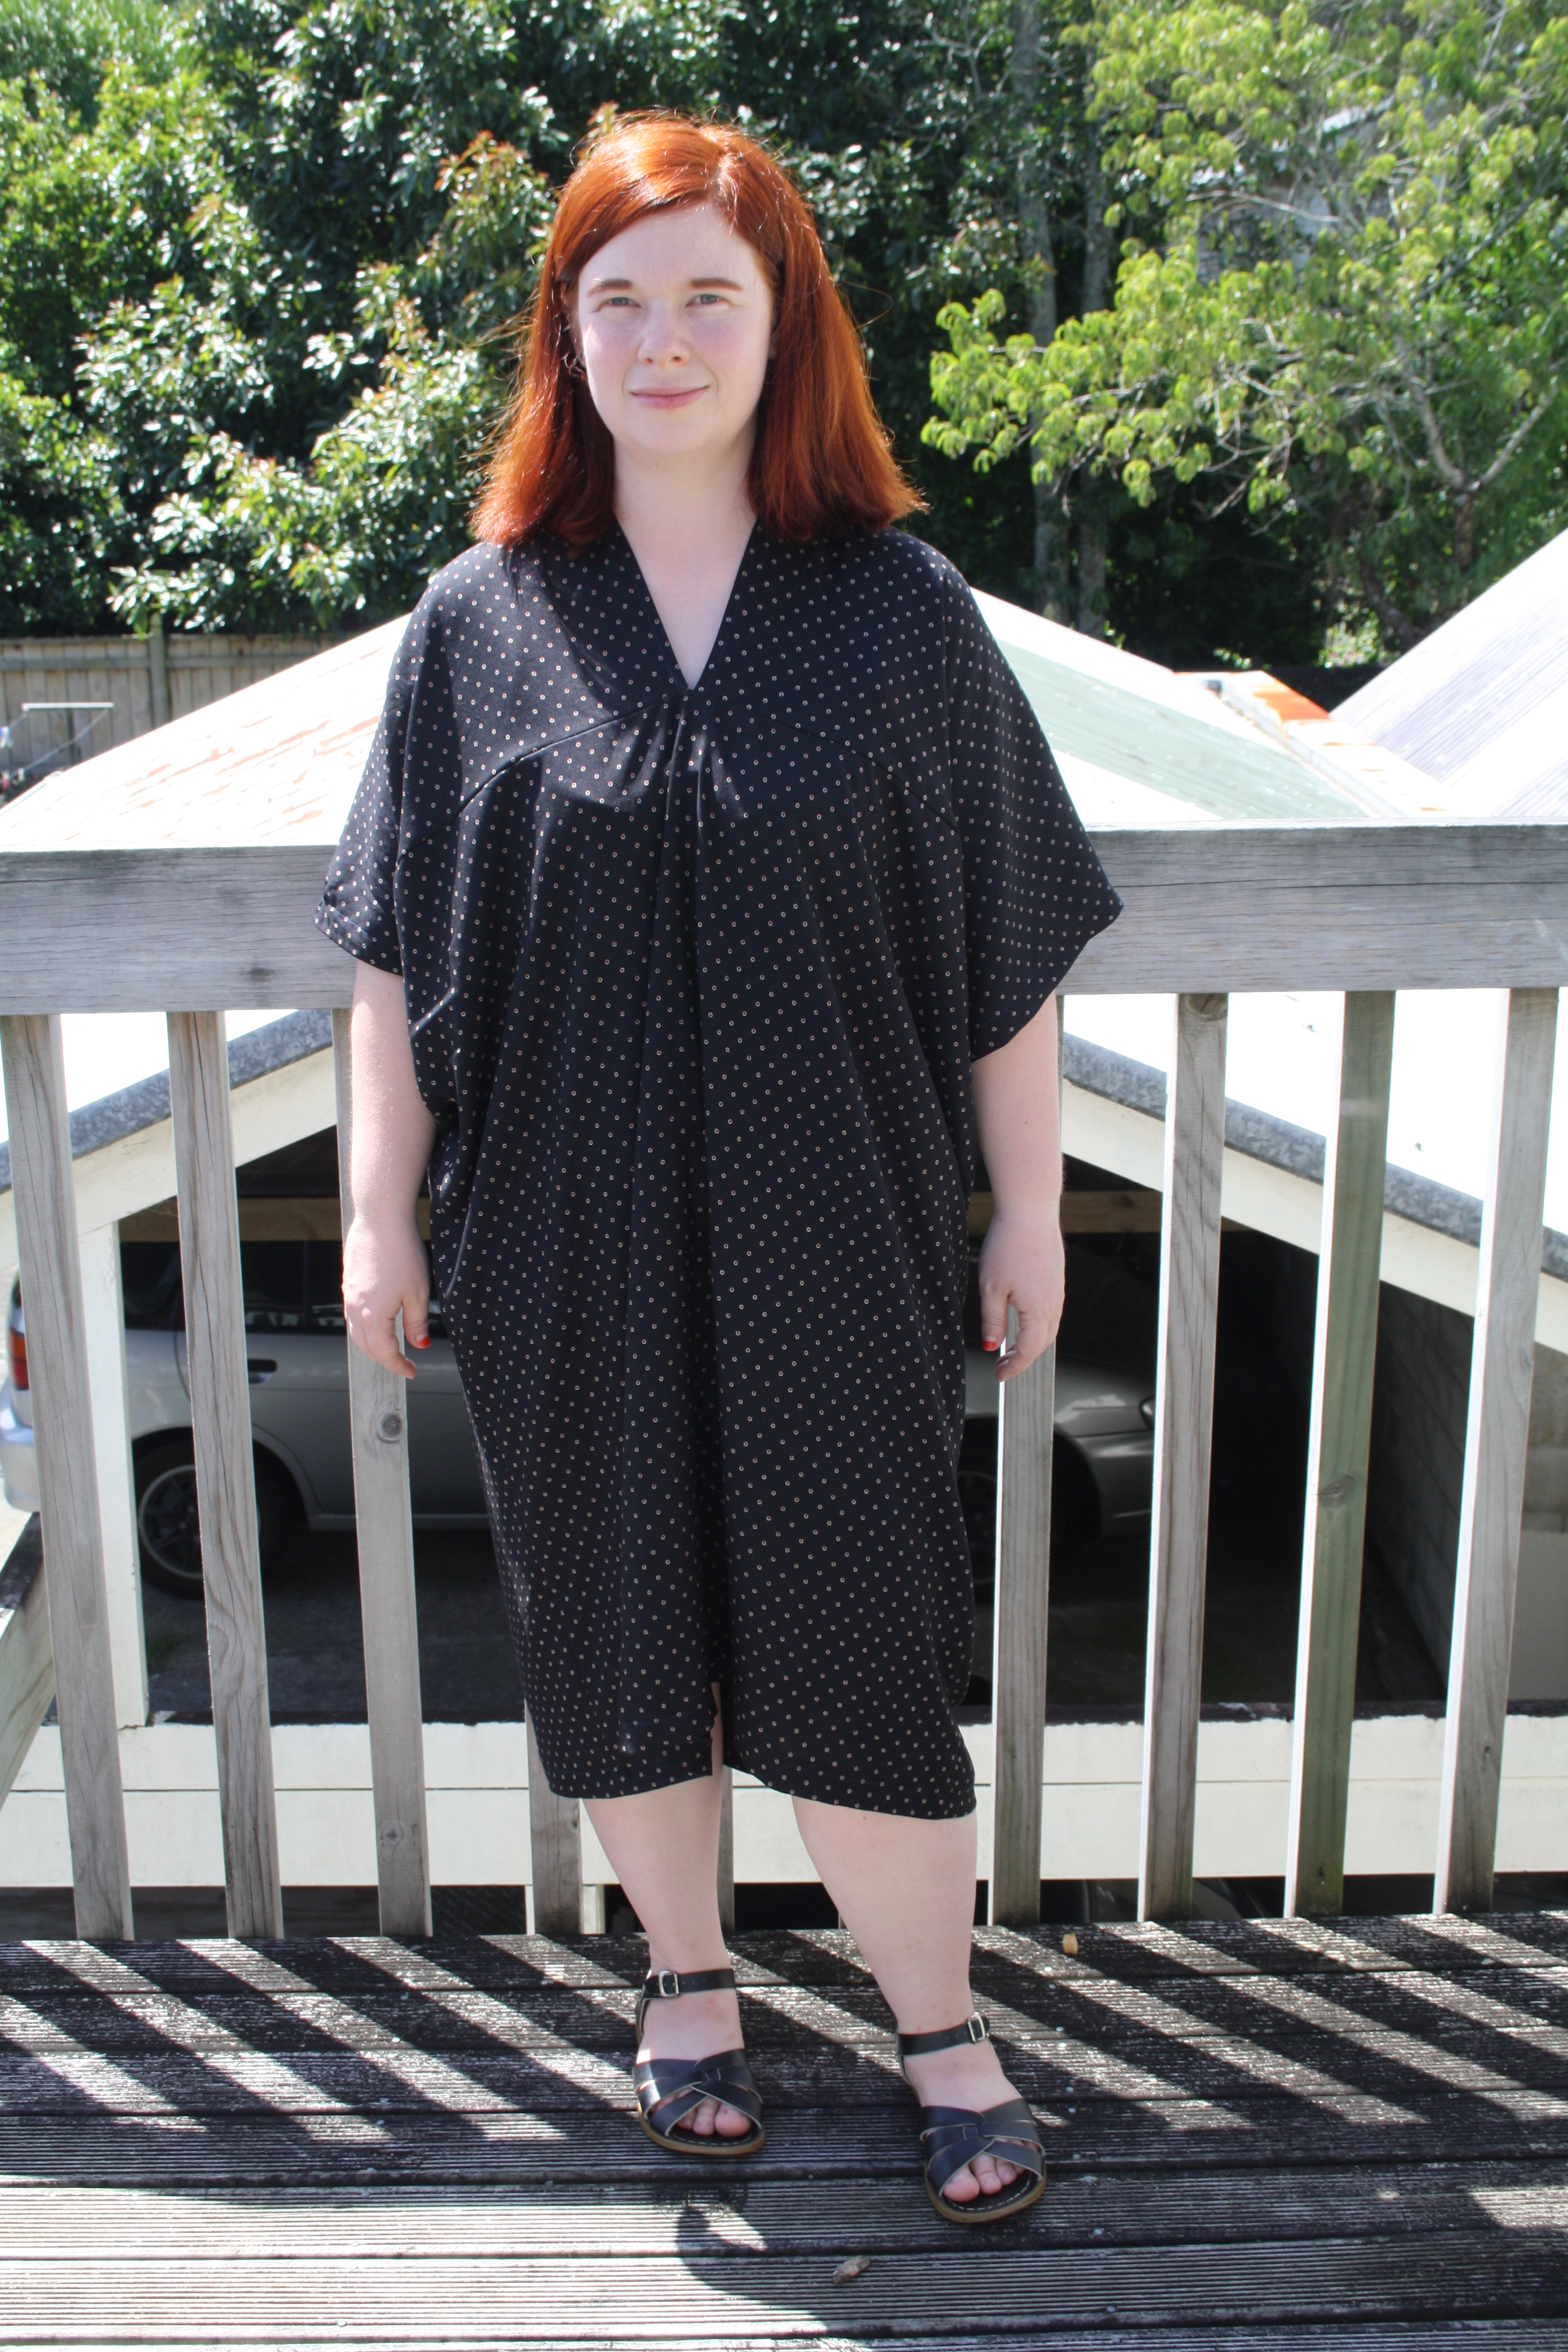 Foray into japanese sewing patterns teaandrainbows japanese fashion always looks effortless and elegant on japanese people but on me not so much ive wanted to give japanese sewing patterns a go for jeuxipadfo Image collections